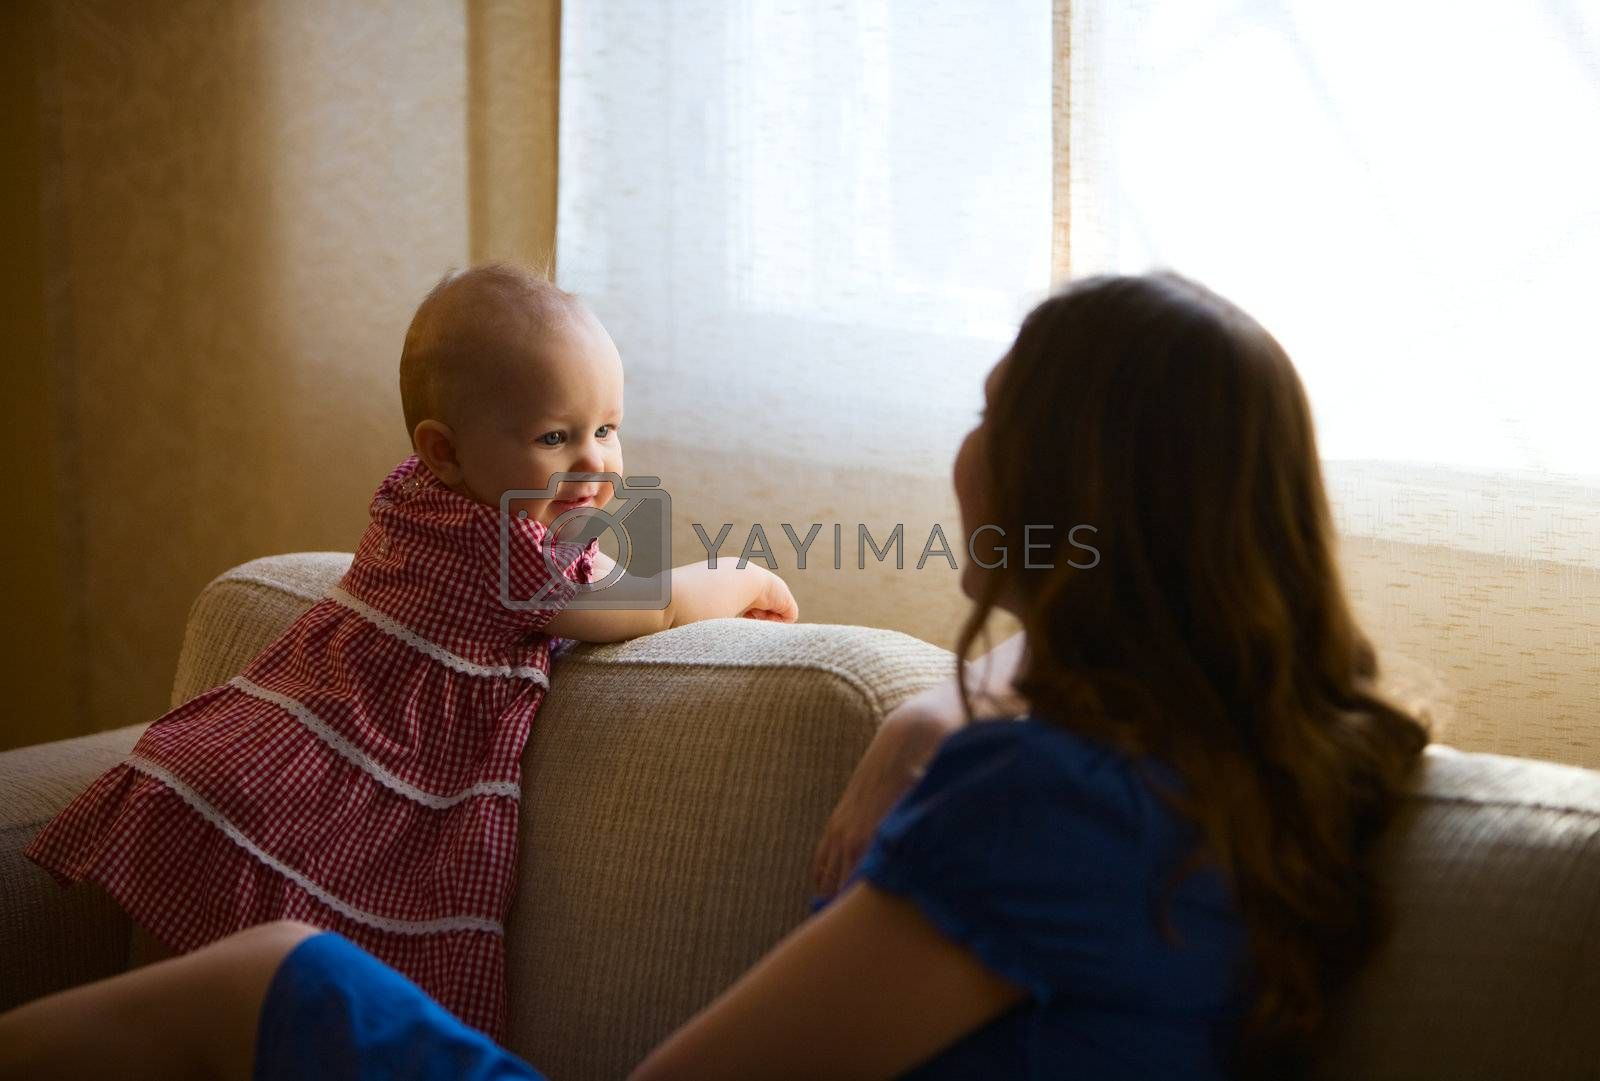 Lifestyle photo of mother and baby daughter at home. Very beautiful natural light